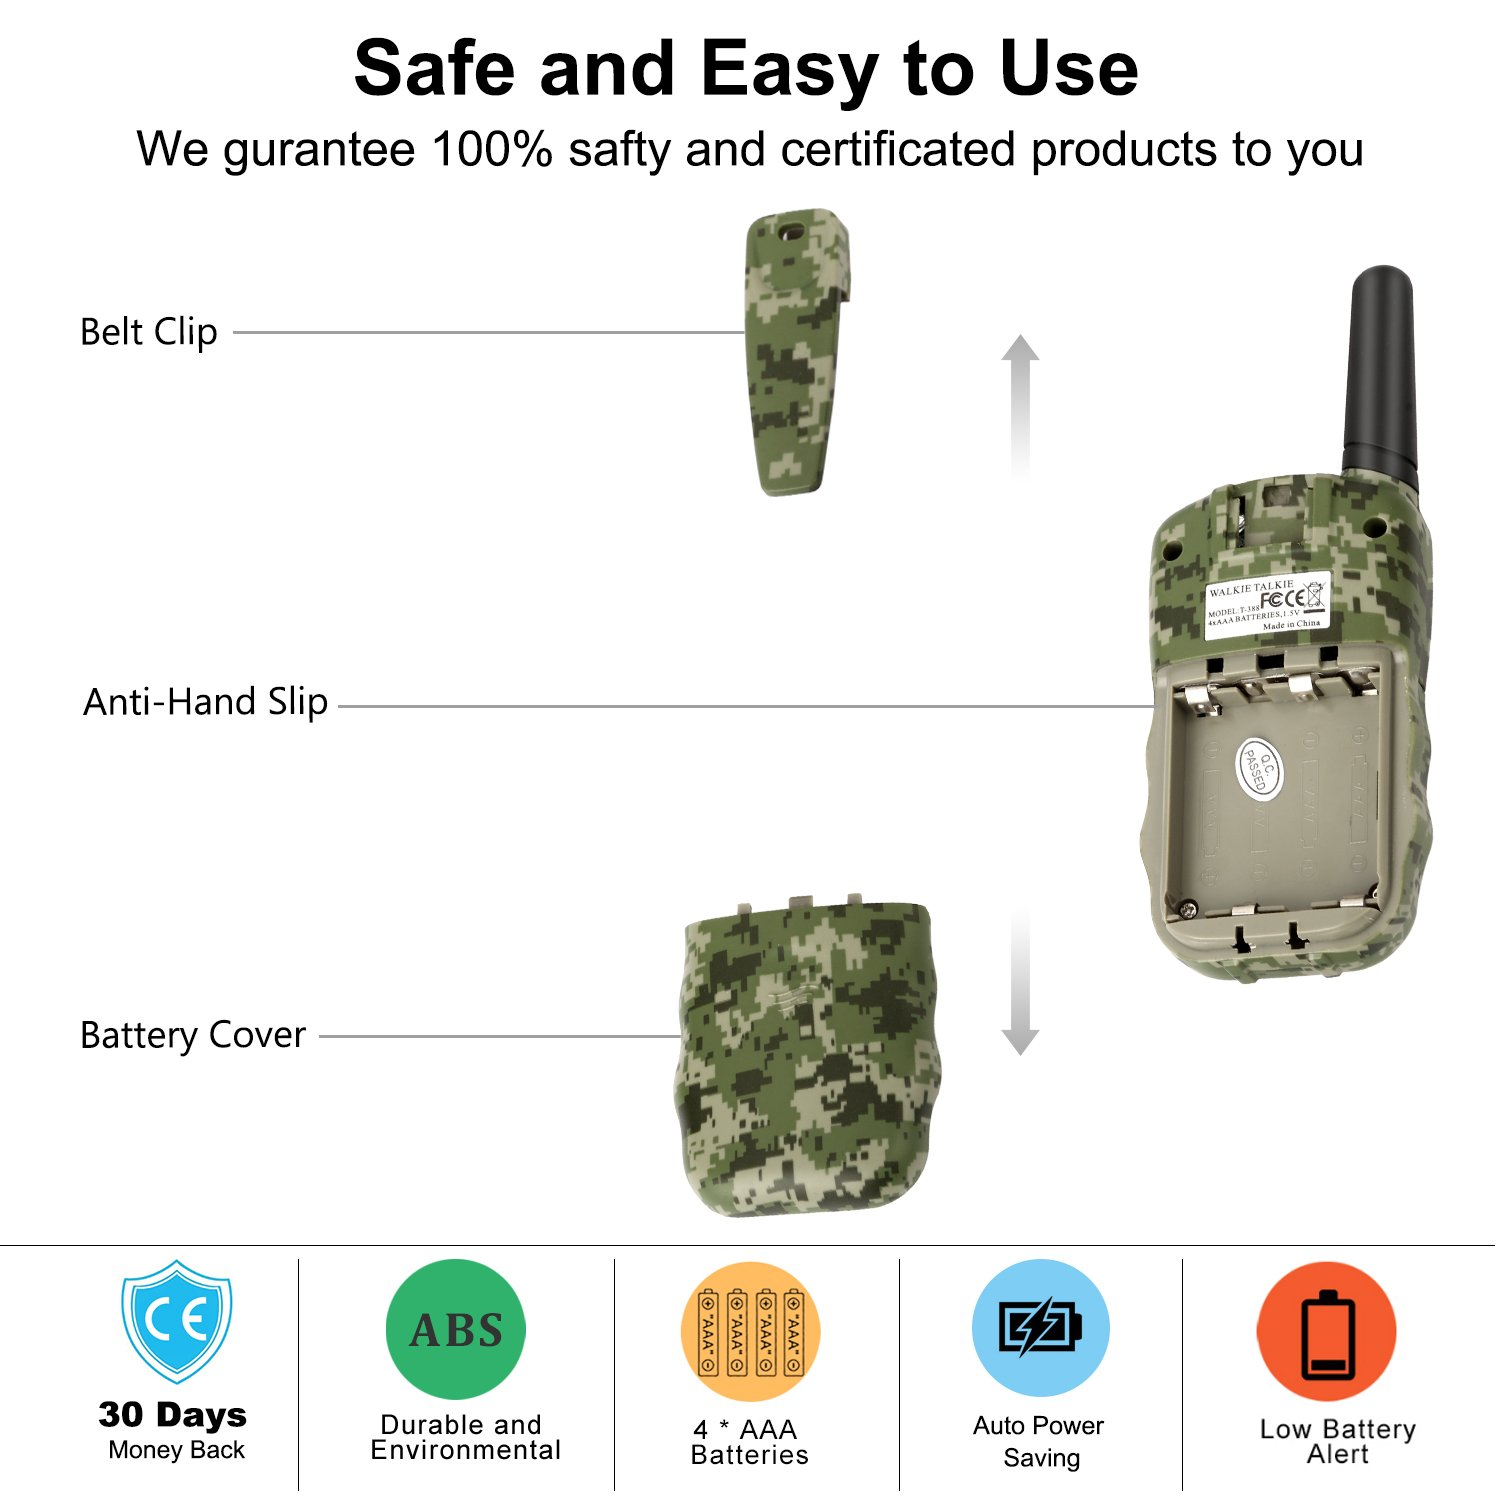 Wishouse Walkie Talkies for Kids,Popular Toys for Boys and Girls Best Handheld Woki Toki with Flashlight,License free Kids Survival Gear for Hunting and Outdoor Adventure(T388 Camouflage 2 Pack) by Wishouse (Image #7)